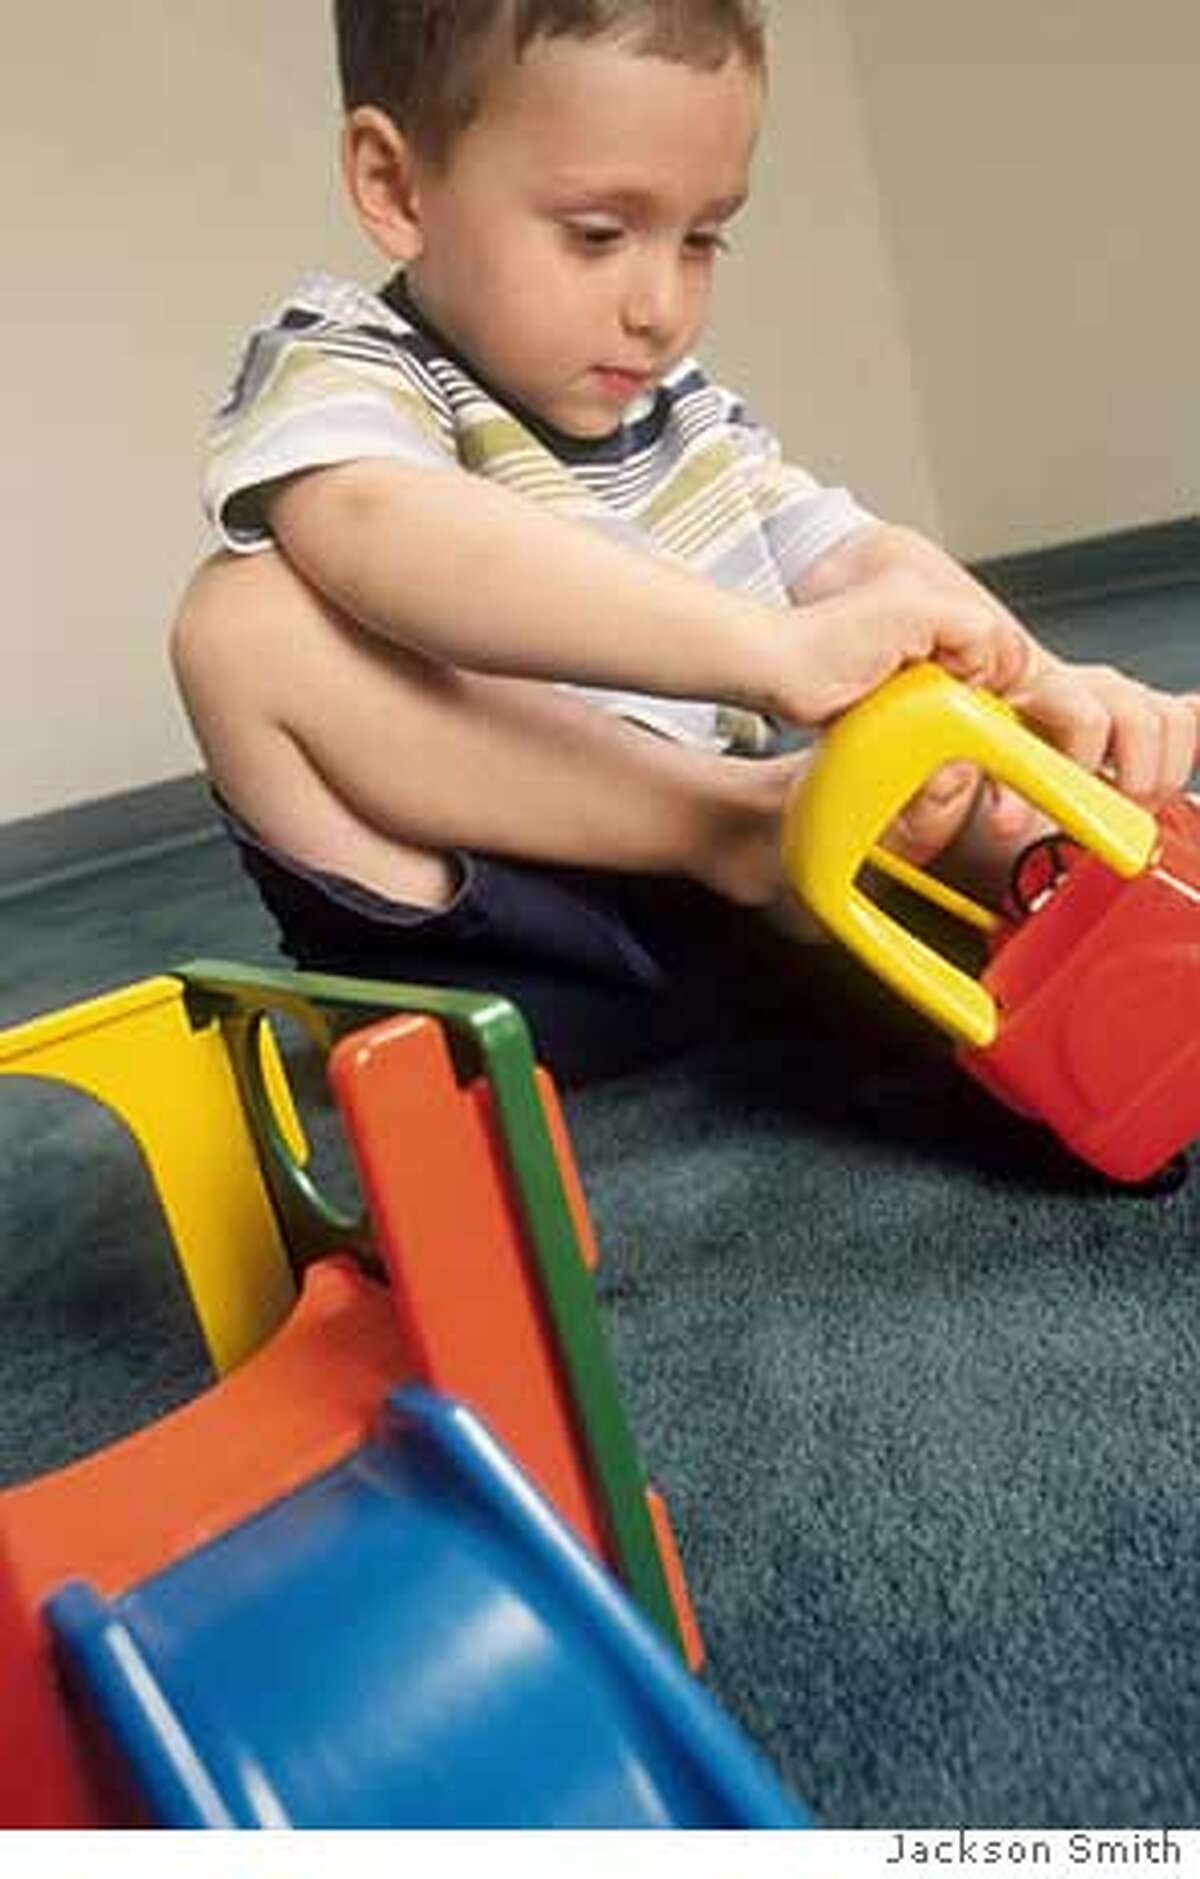 """This photo illustrates how children make """"scale errors"""" � they try to climb into a toy car or sit down on a toy chair because they haven't yet gained the ability to judge the scale of objects. PHOTO CREDIT: JACKSON SMITH"""